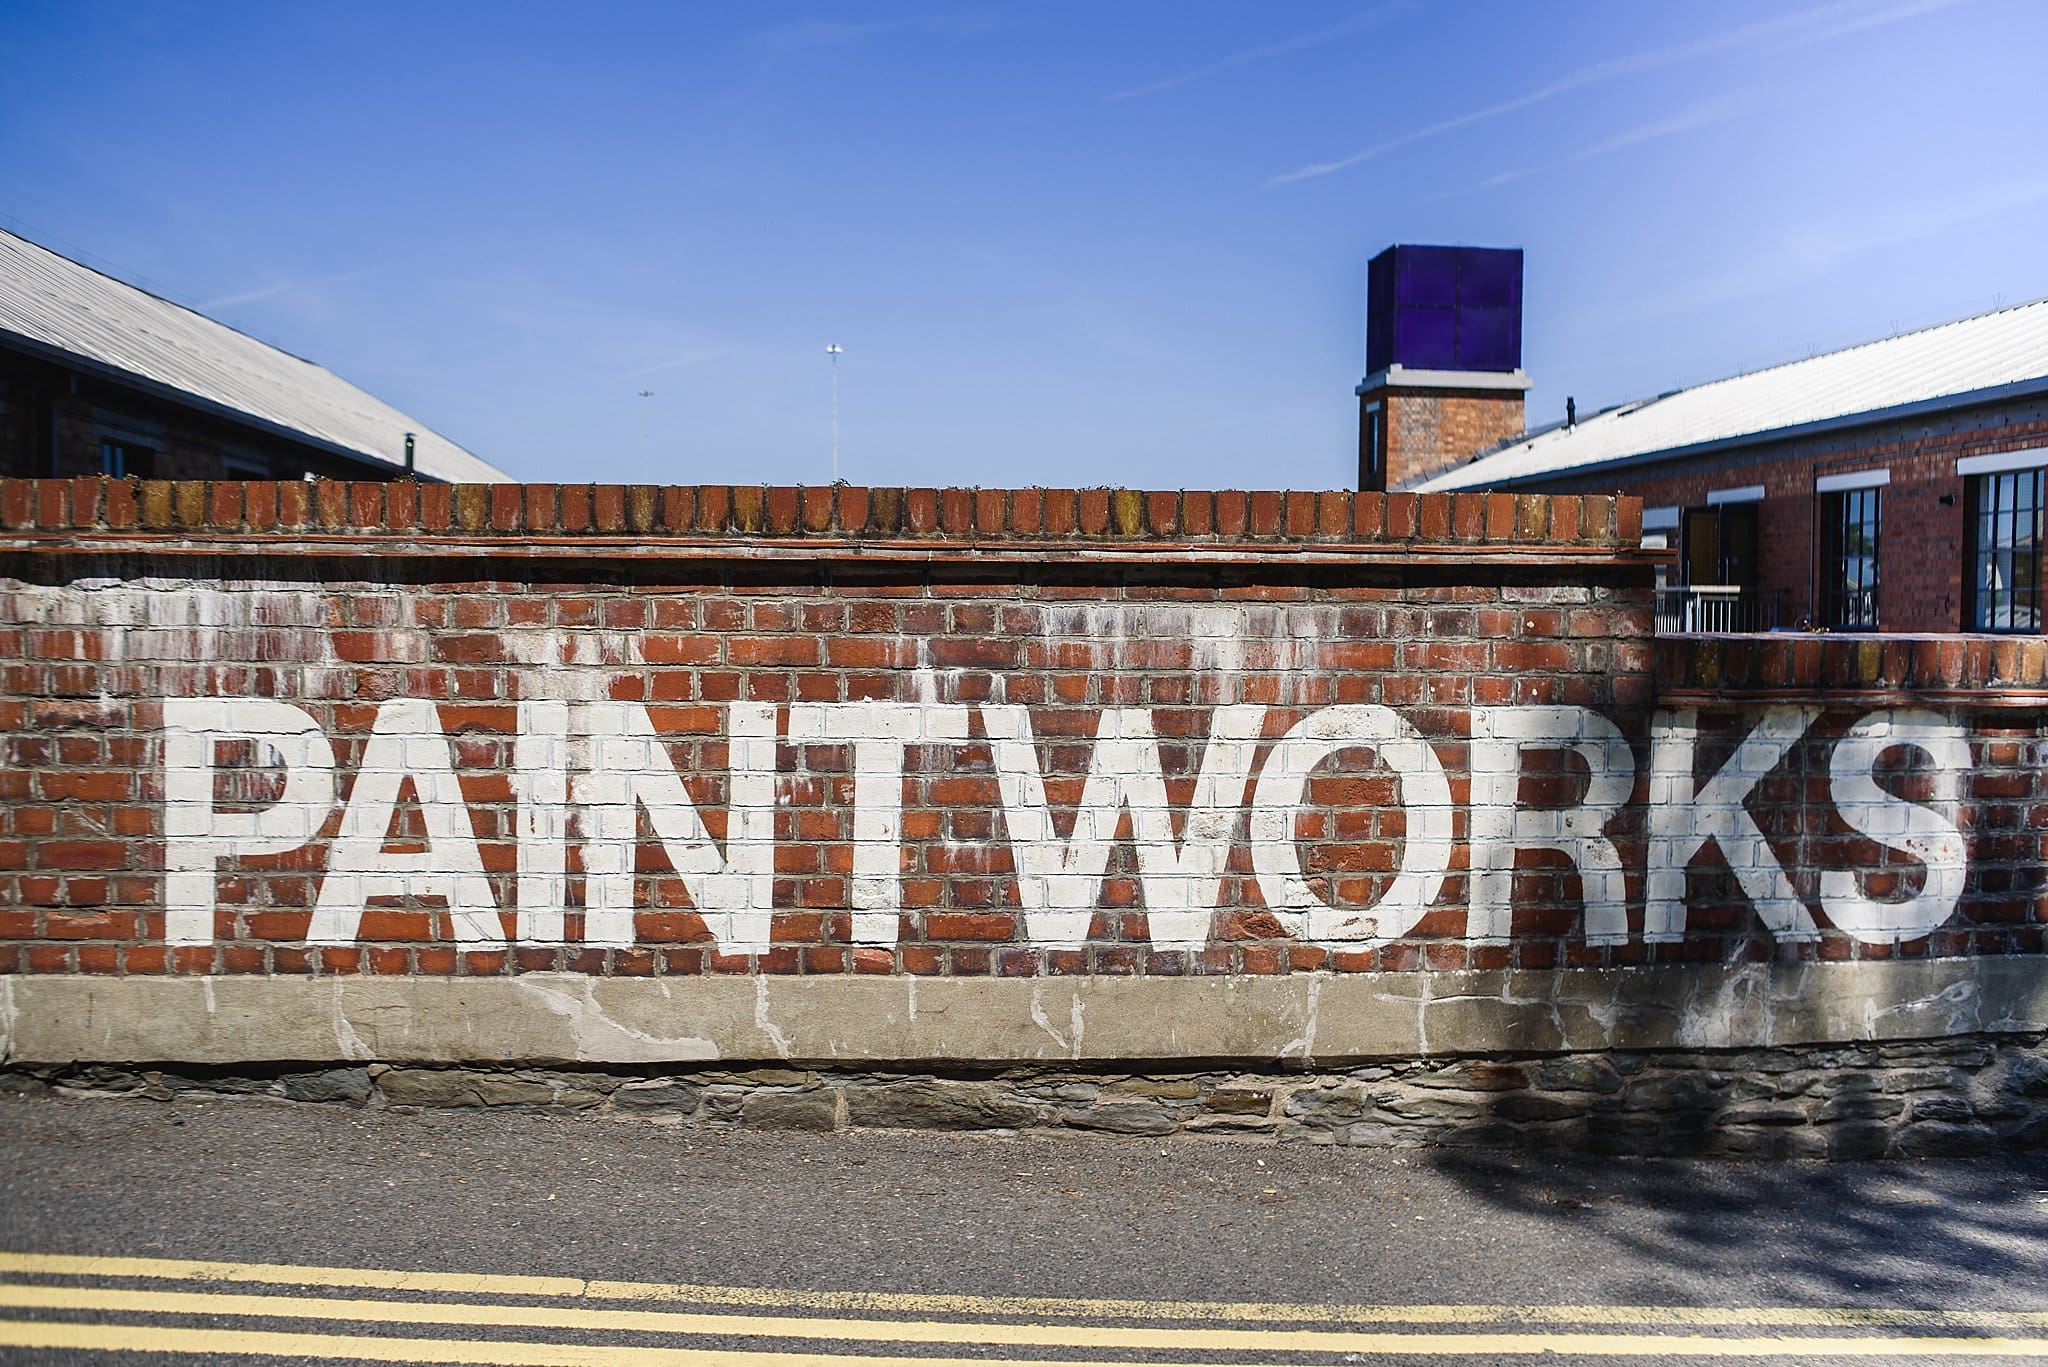 The Paintwork's sign painted on a brick wall